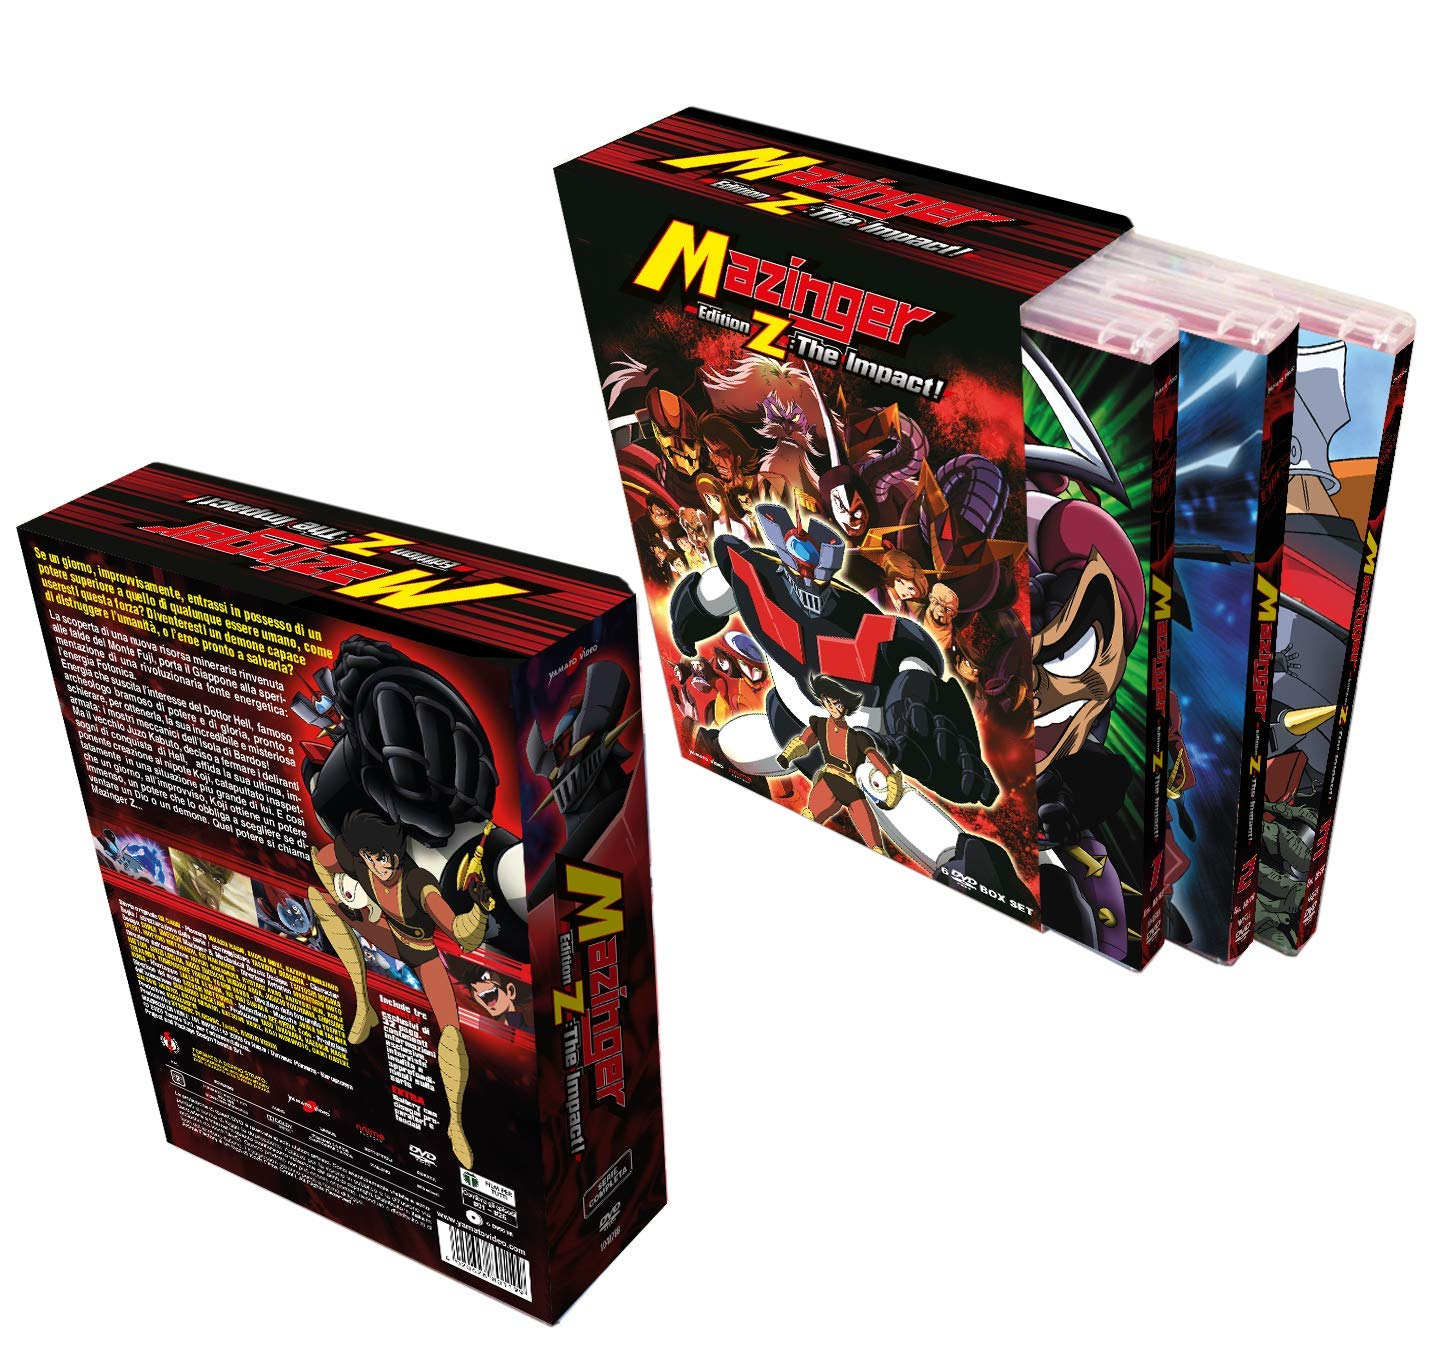 COF.MAZINGER EDITION Z - THE IMPACT! (6 DVD) (DVD)